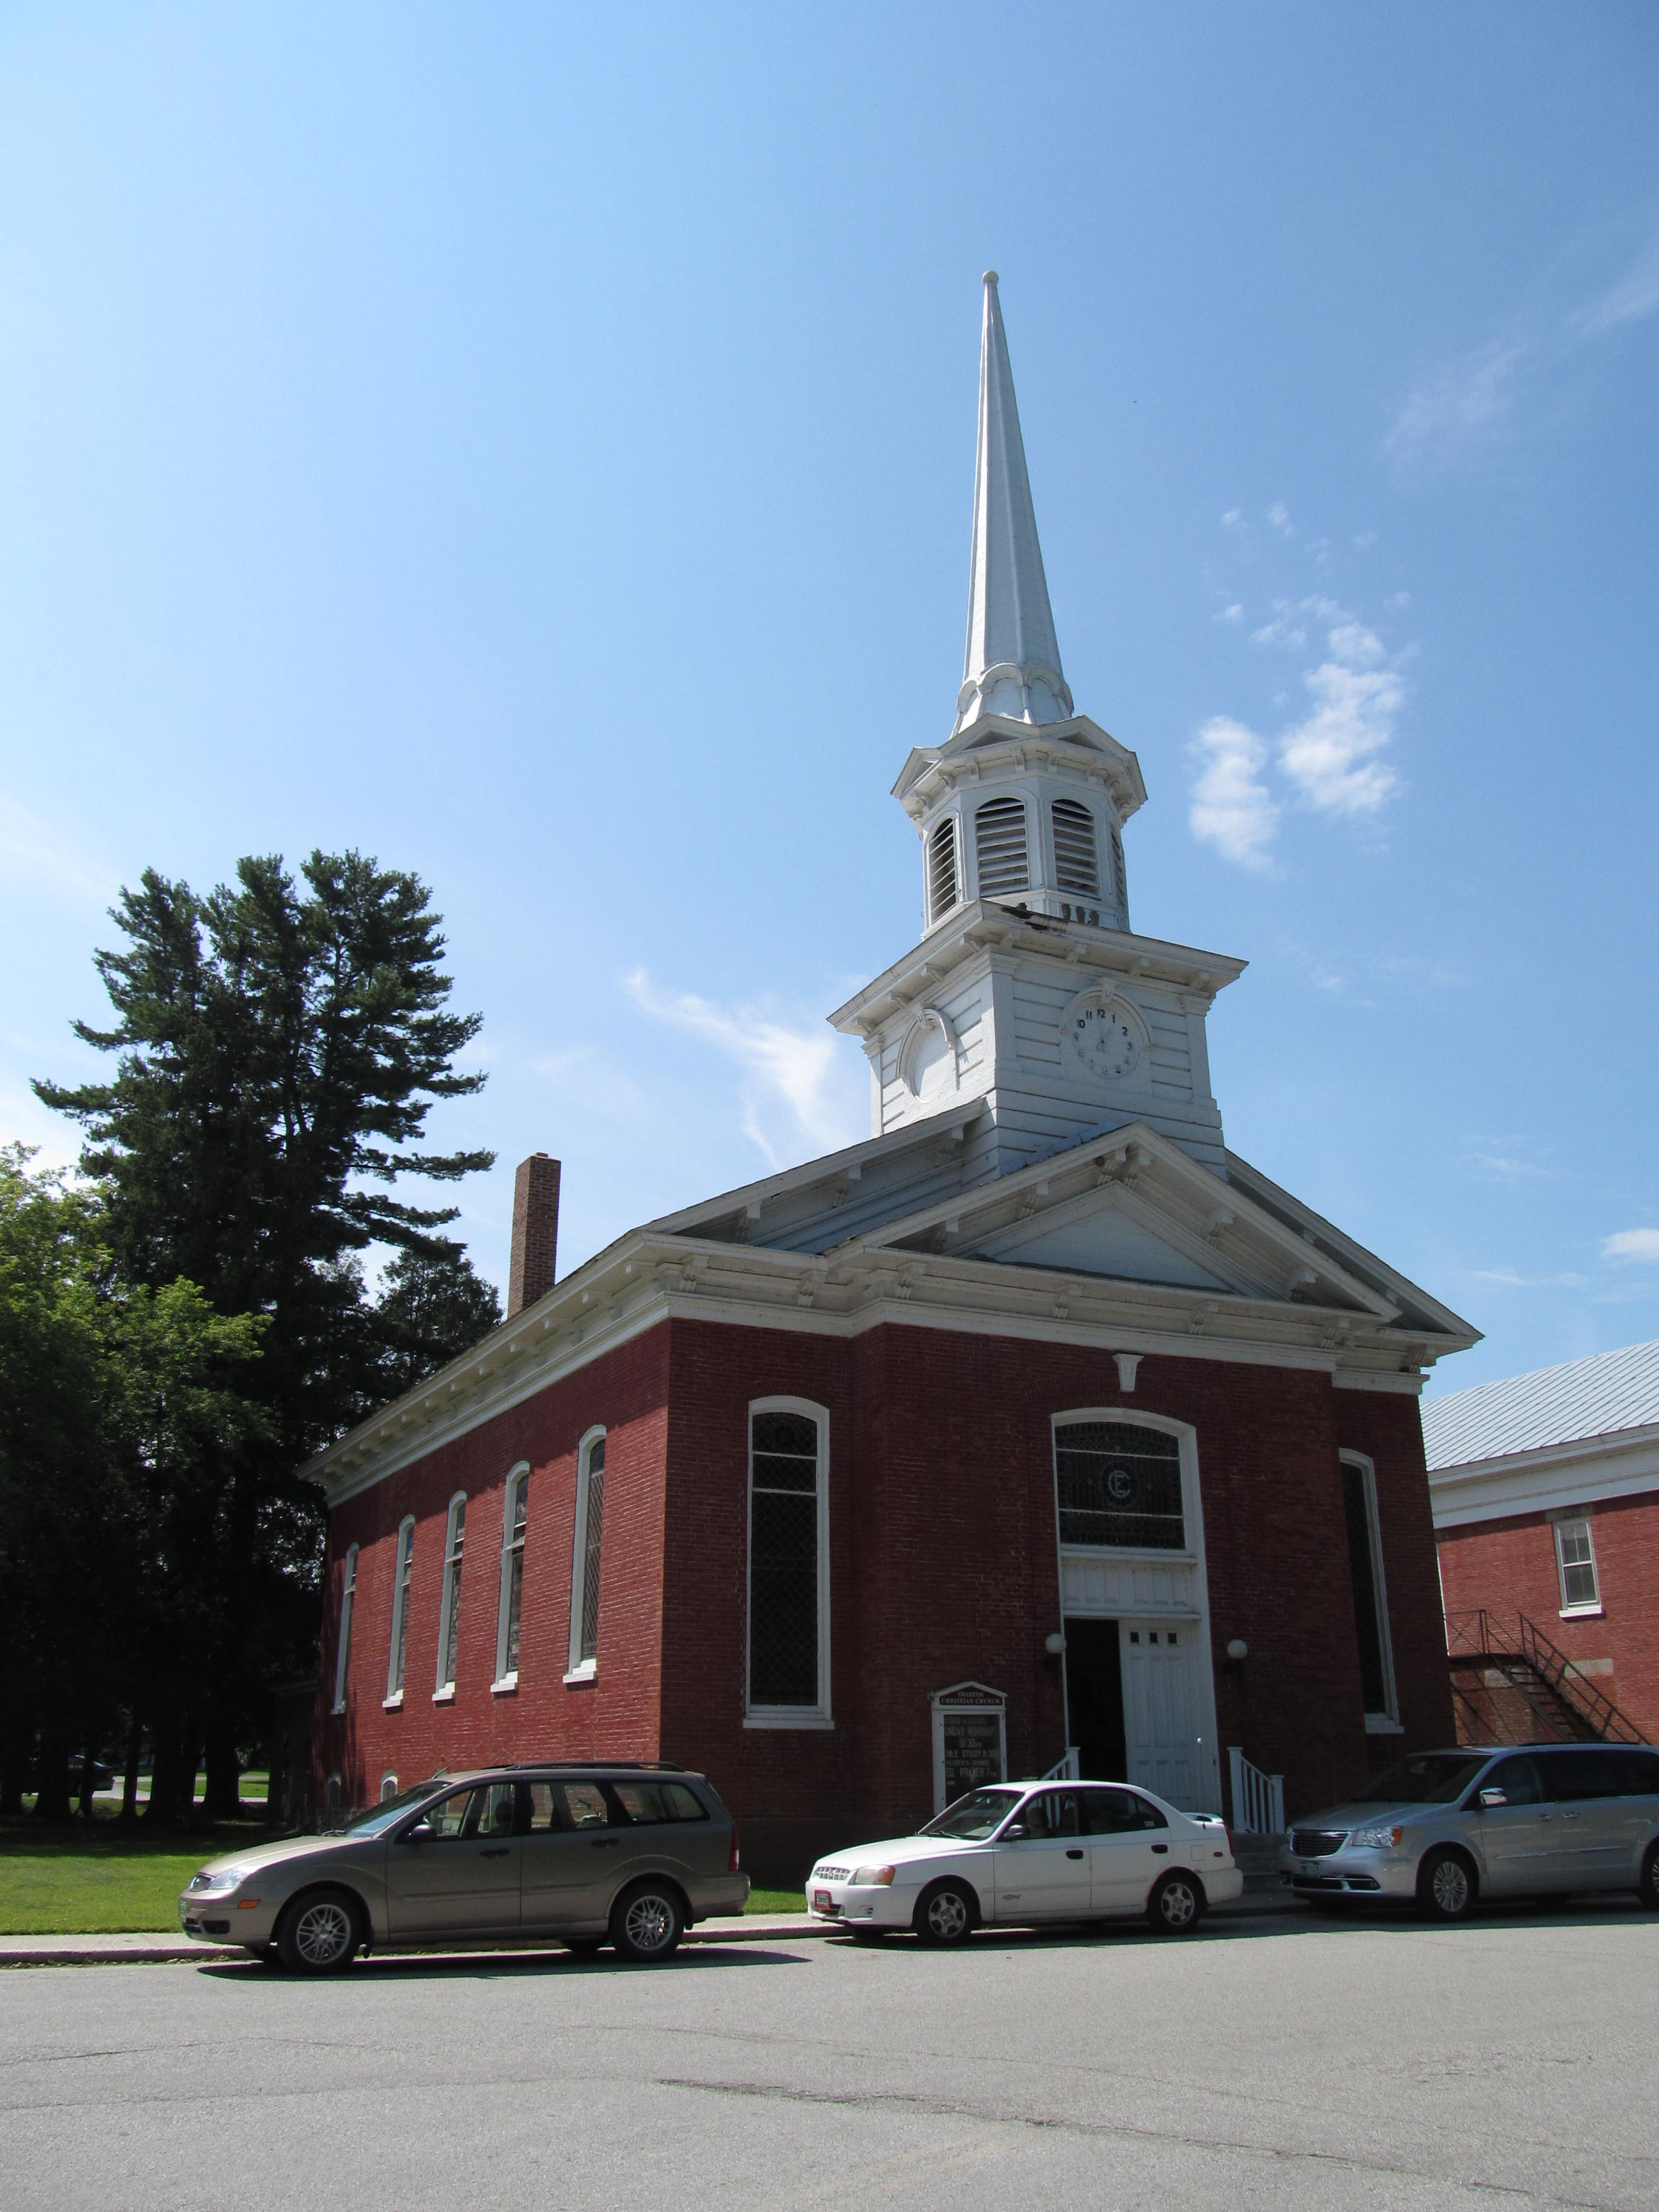 swanton online dating Faith focused dating and relationships browse profiles & photos of vermont swanton catholic men and join catholicmatchcom, the clear leader in online dating for catholics with more catholic singles than any other catholic dating site.